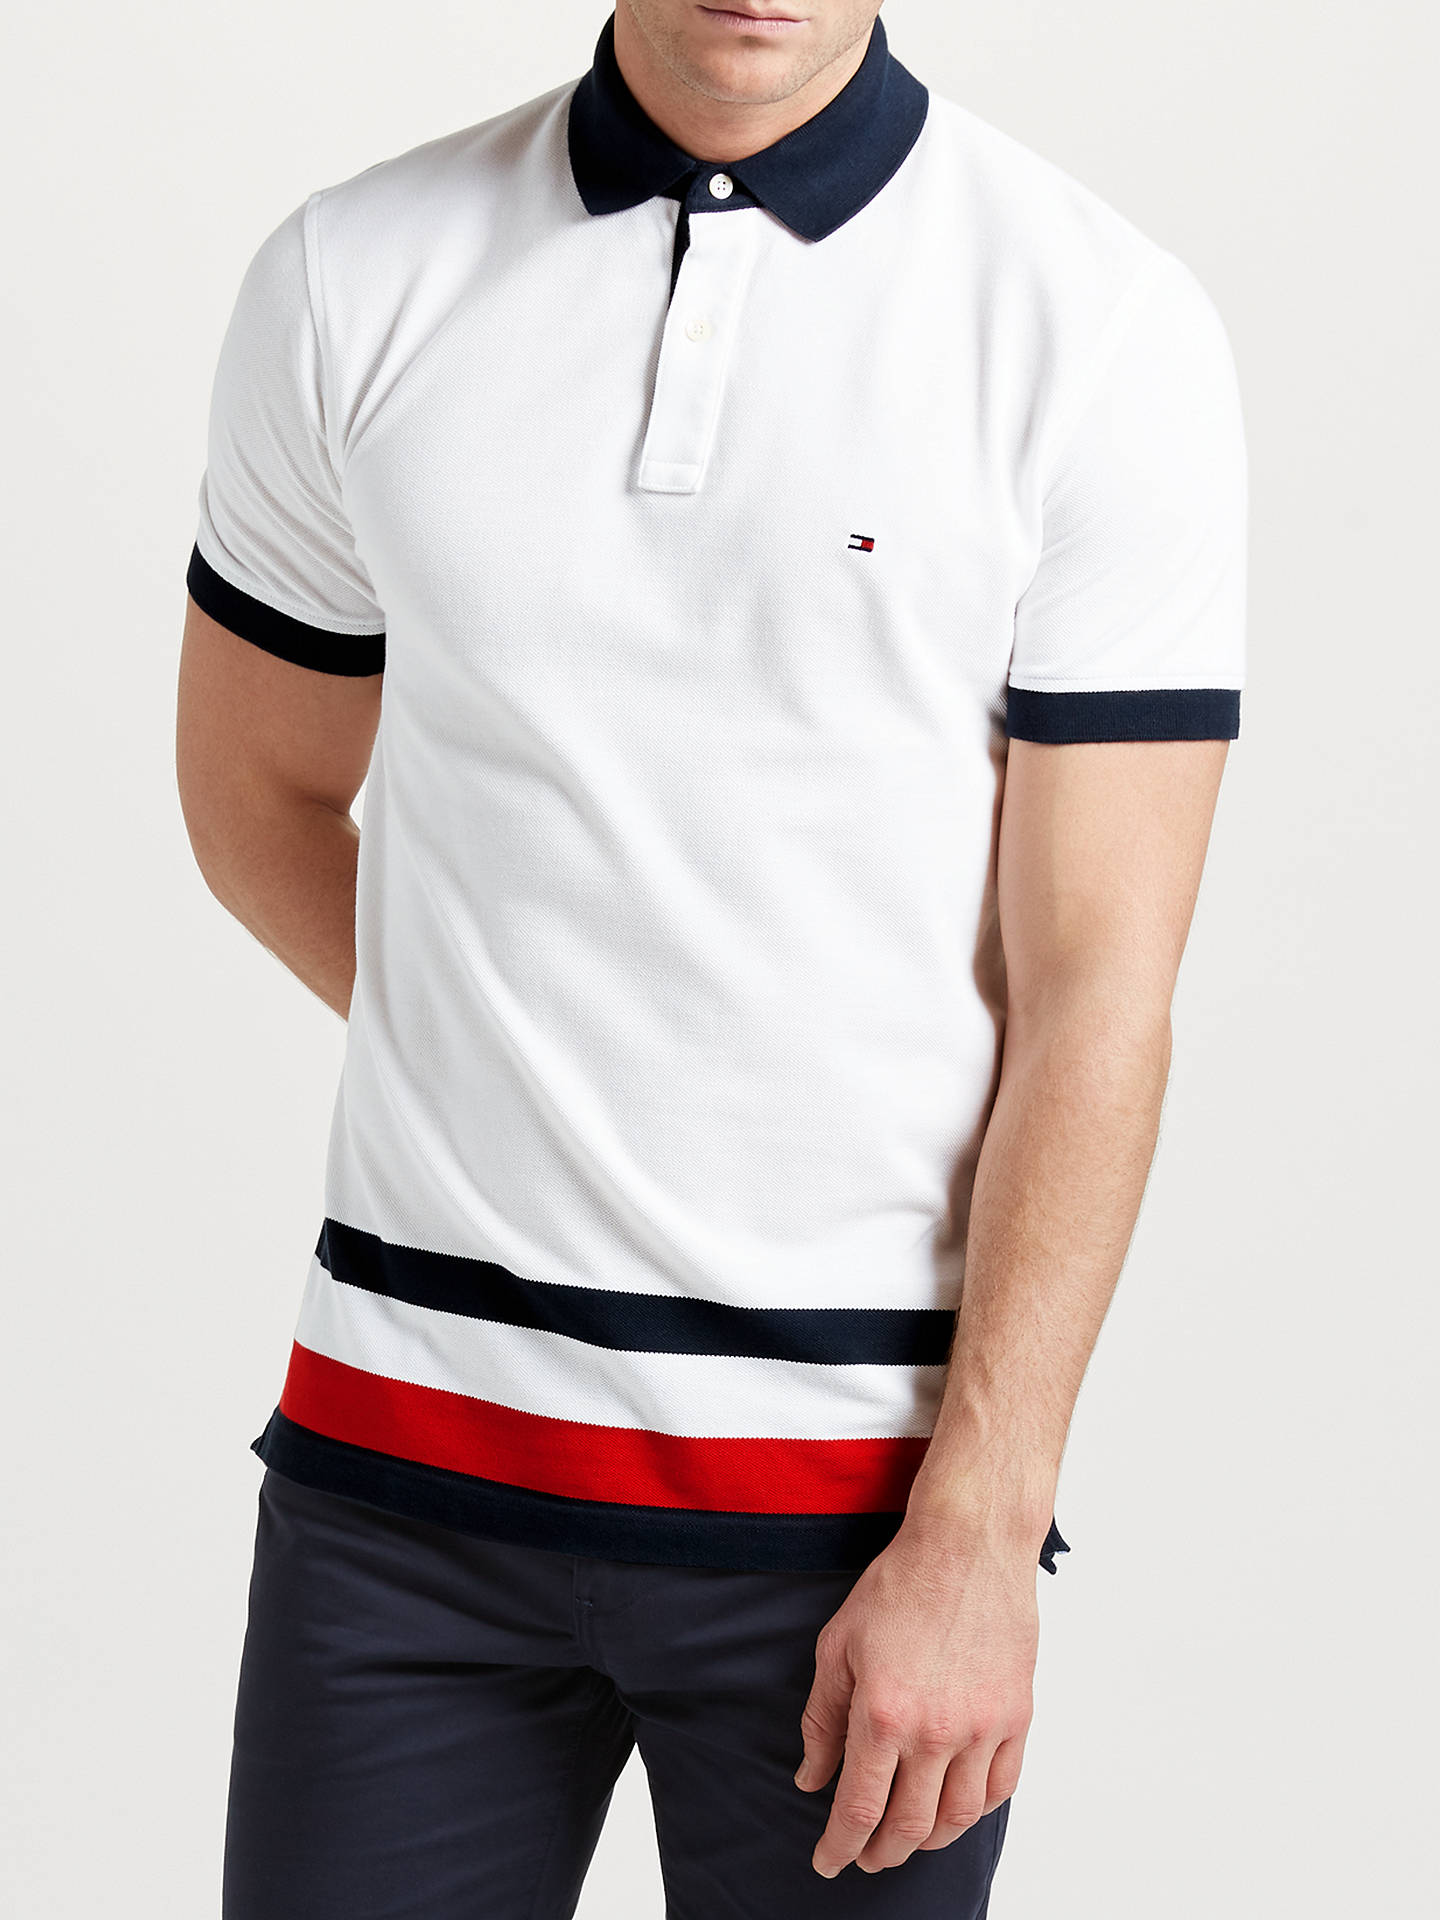 65591321f Buy Tommy Hilfiger Bart Short Sleeve Polo Top, Classic White, S Online at  johnlewis ...